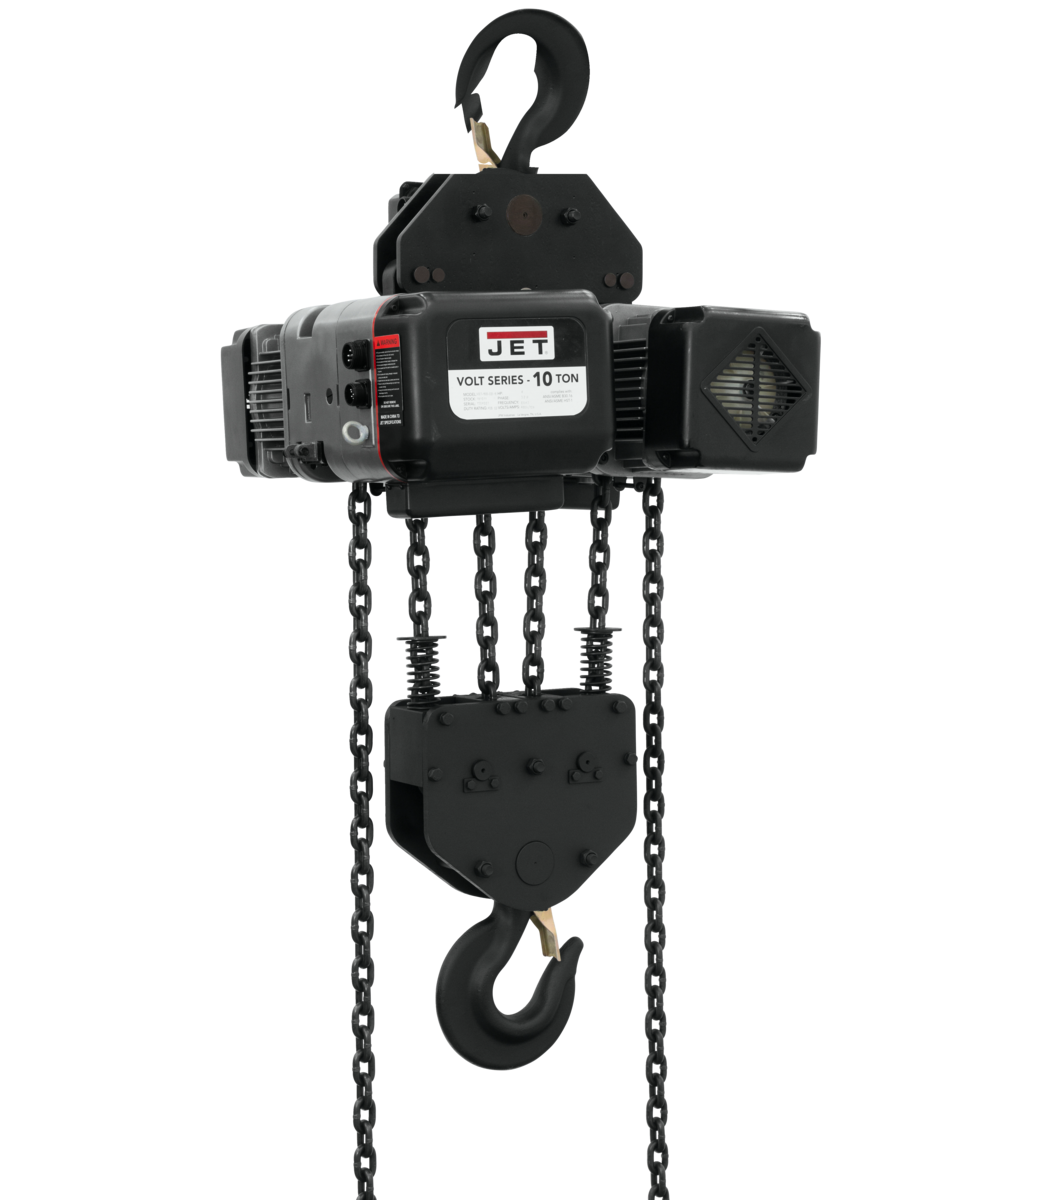 VOLT 10T VARIABLE-SPEED ELECTRIC HOIST 3PH 460V 15' LIFT